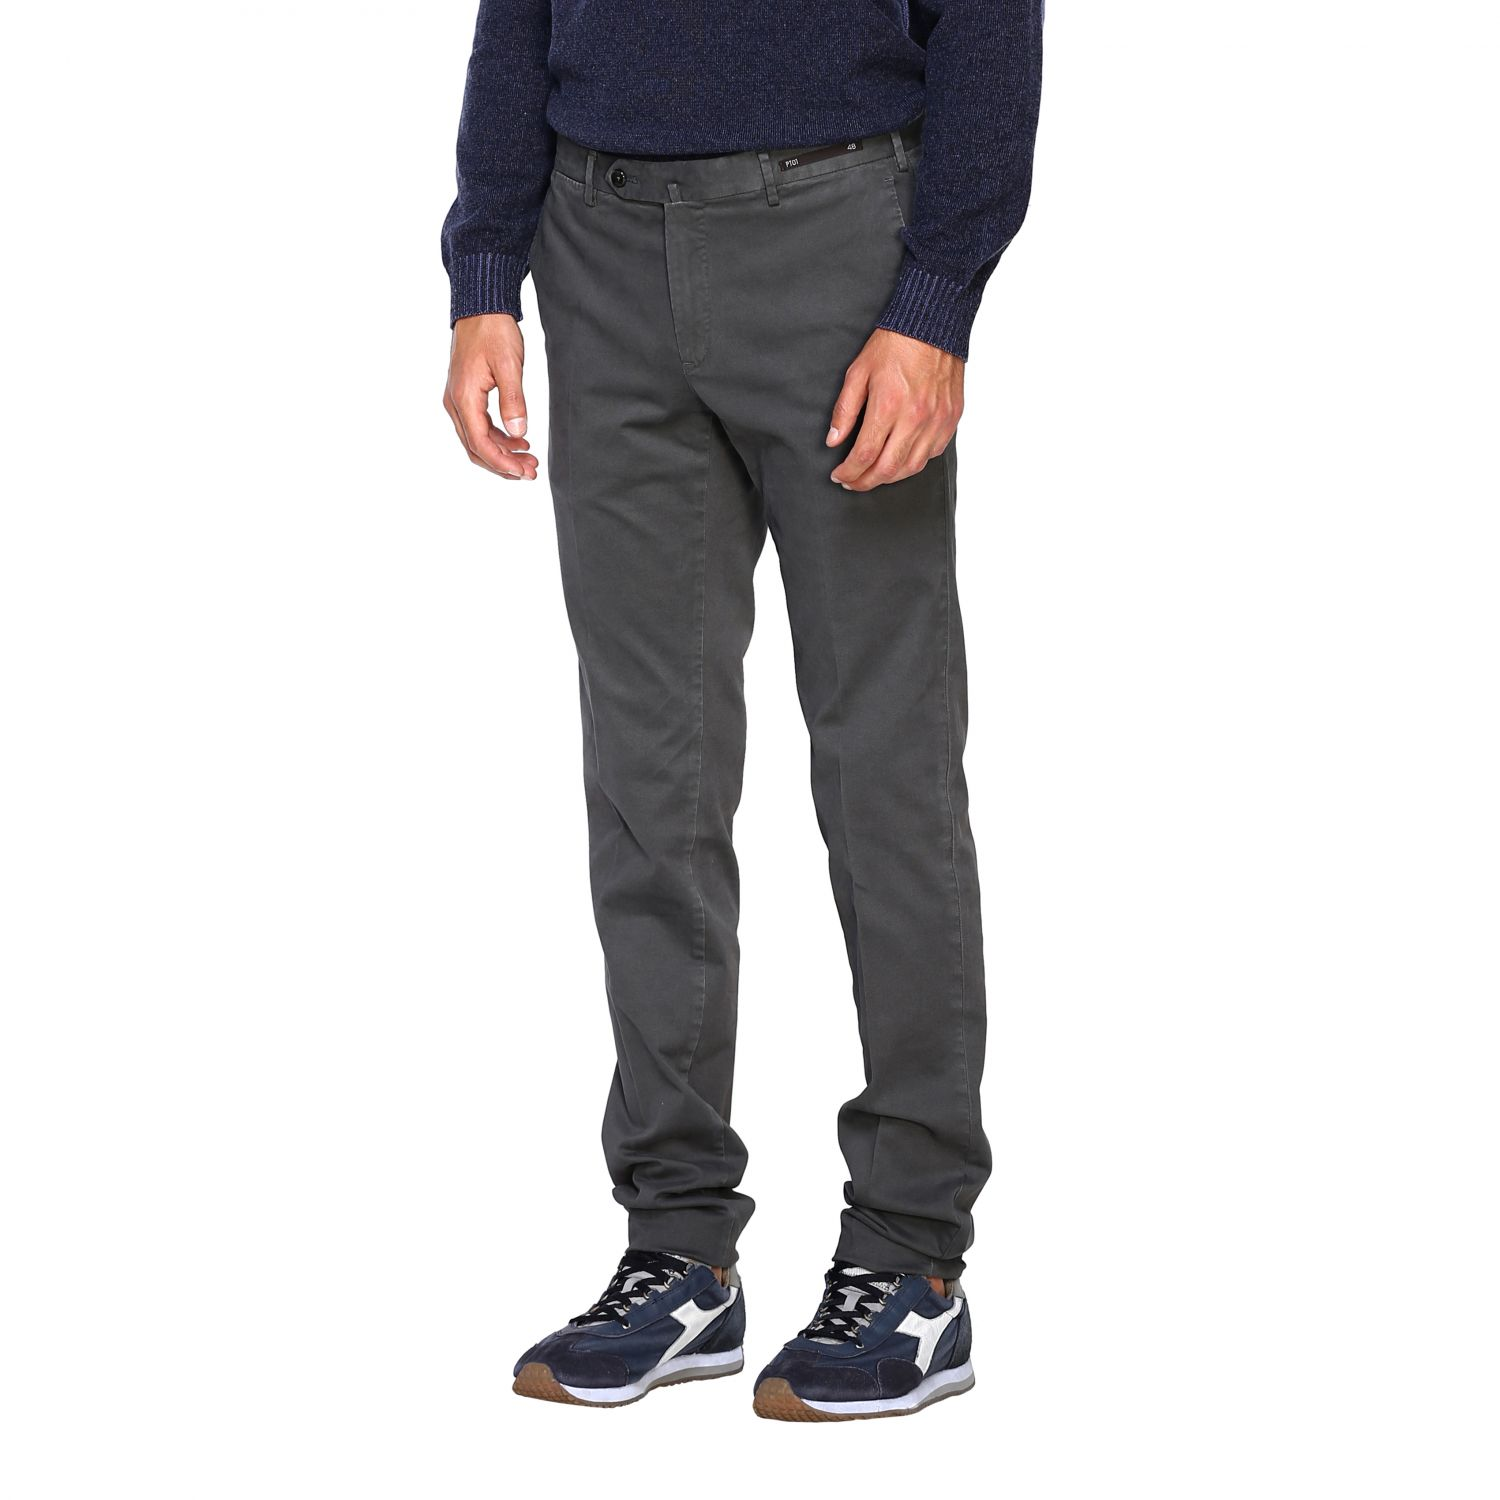 Trousers Pt: Trousers men Pt grey 4